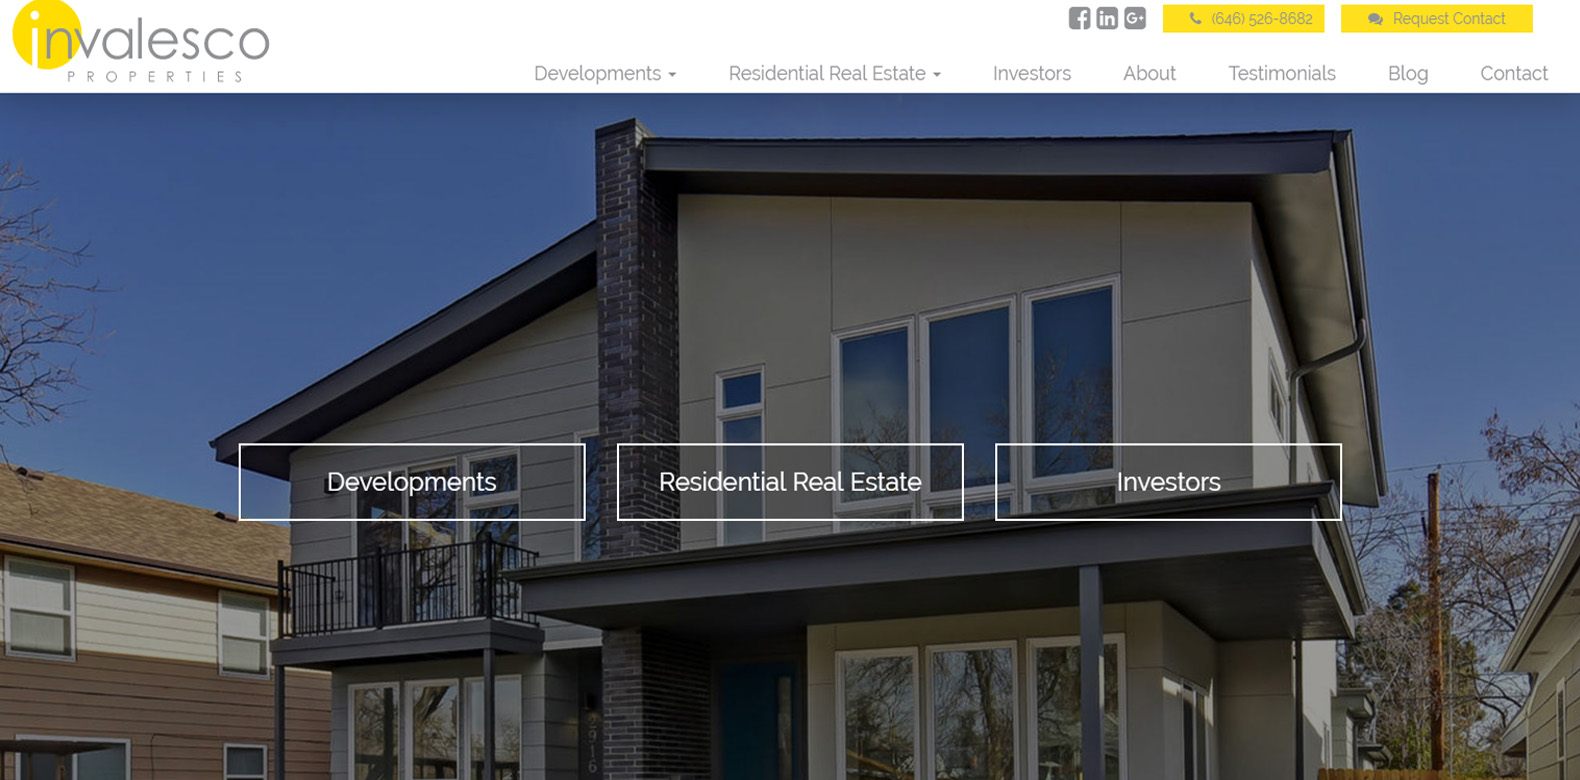 New Website Launch: Invalesco Properties